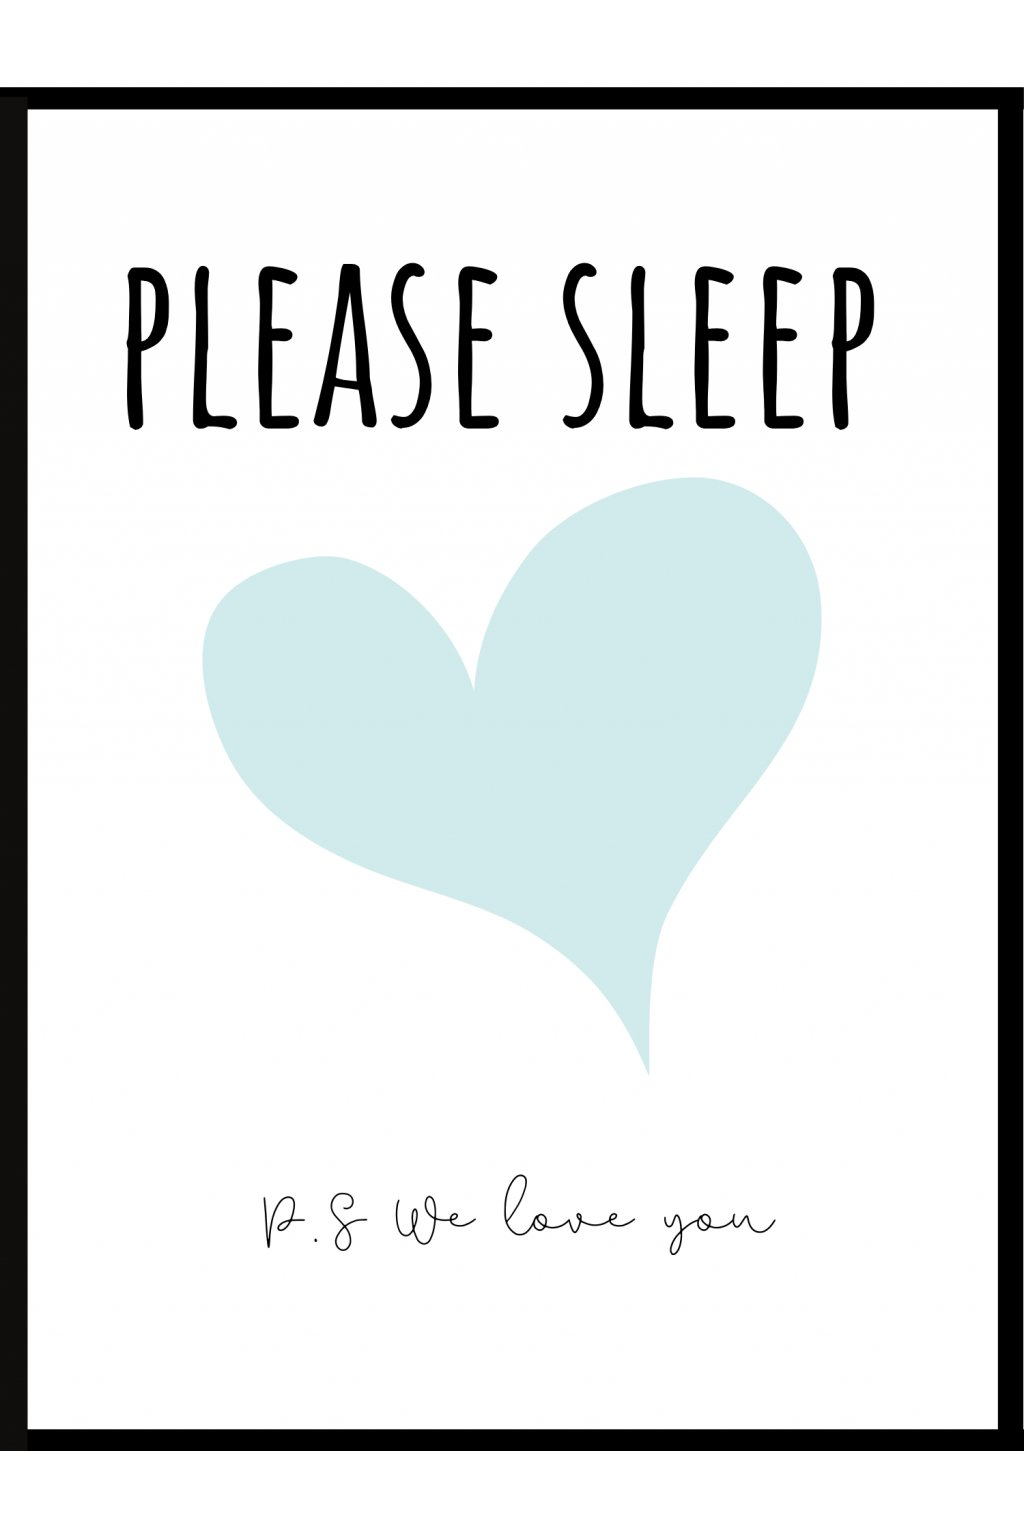 Please sleep with heart 2